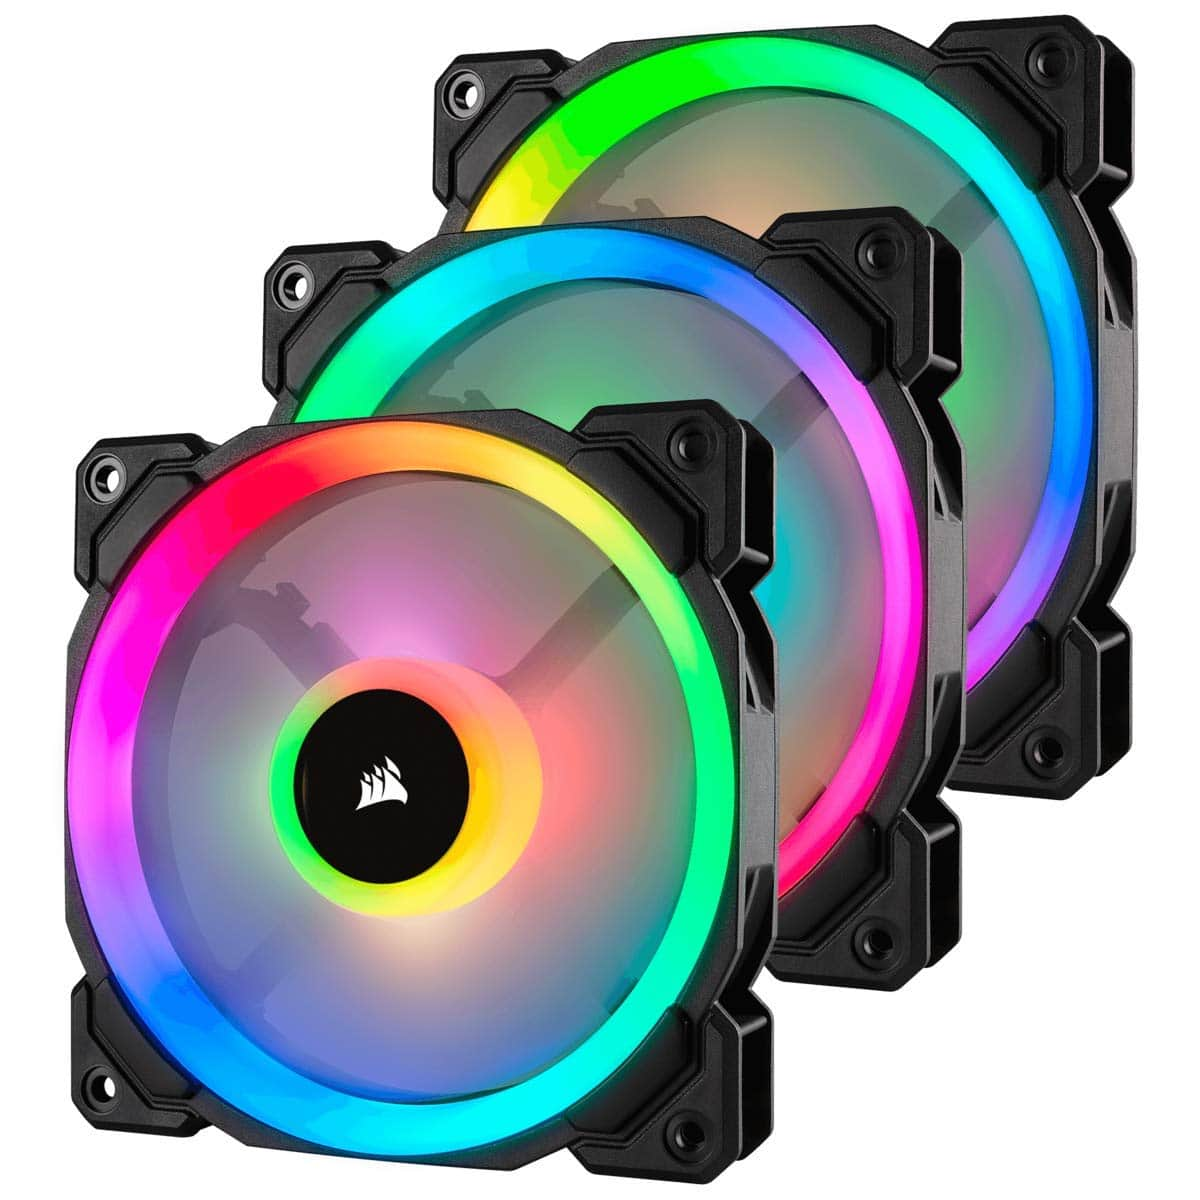 Amazon: Corsair LL Series LL120 RGB 120mm Dual Light Loop RGB LED PWM Fan 3 Fan Pack with Lighting Node Pro $75